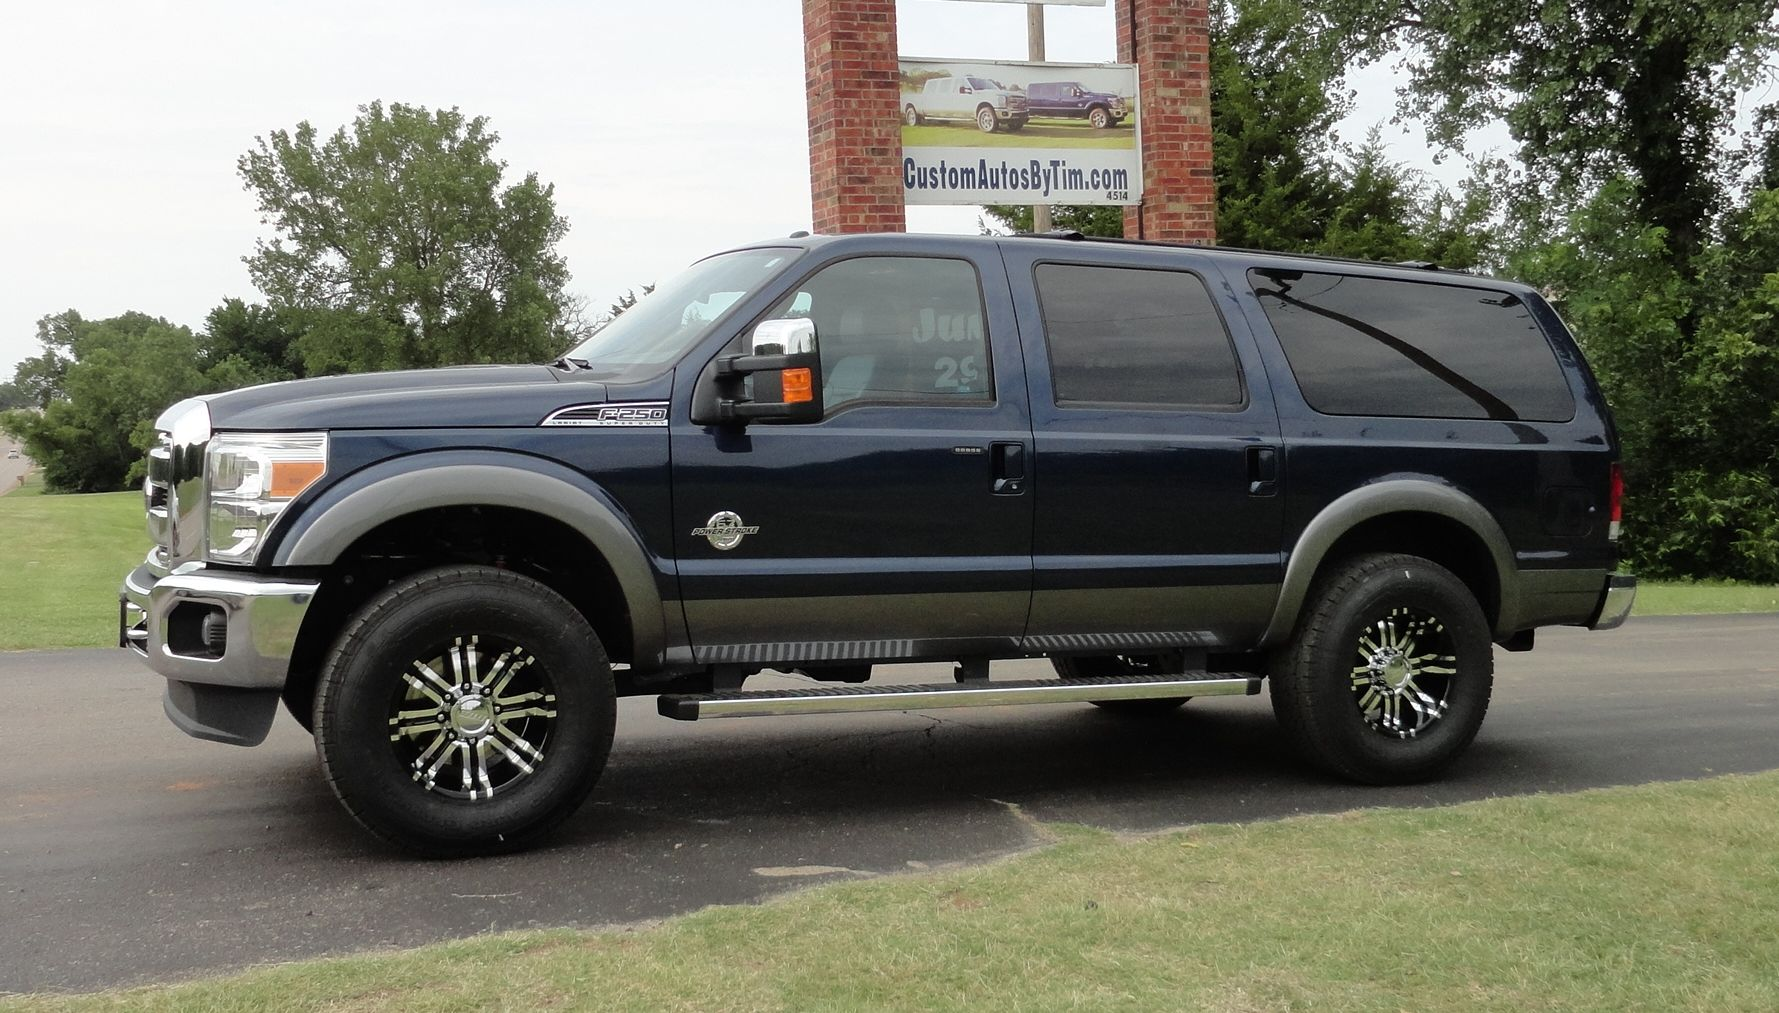 New Ford Excursion side profile